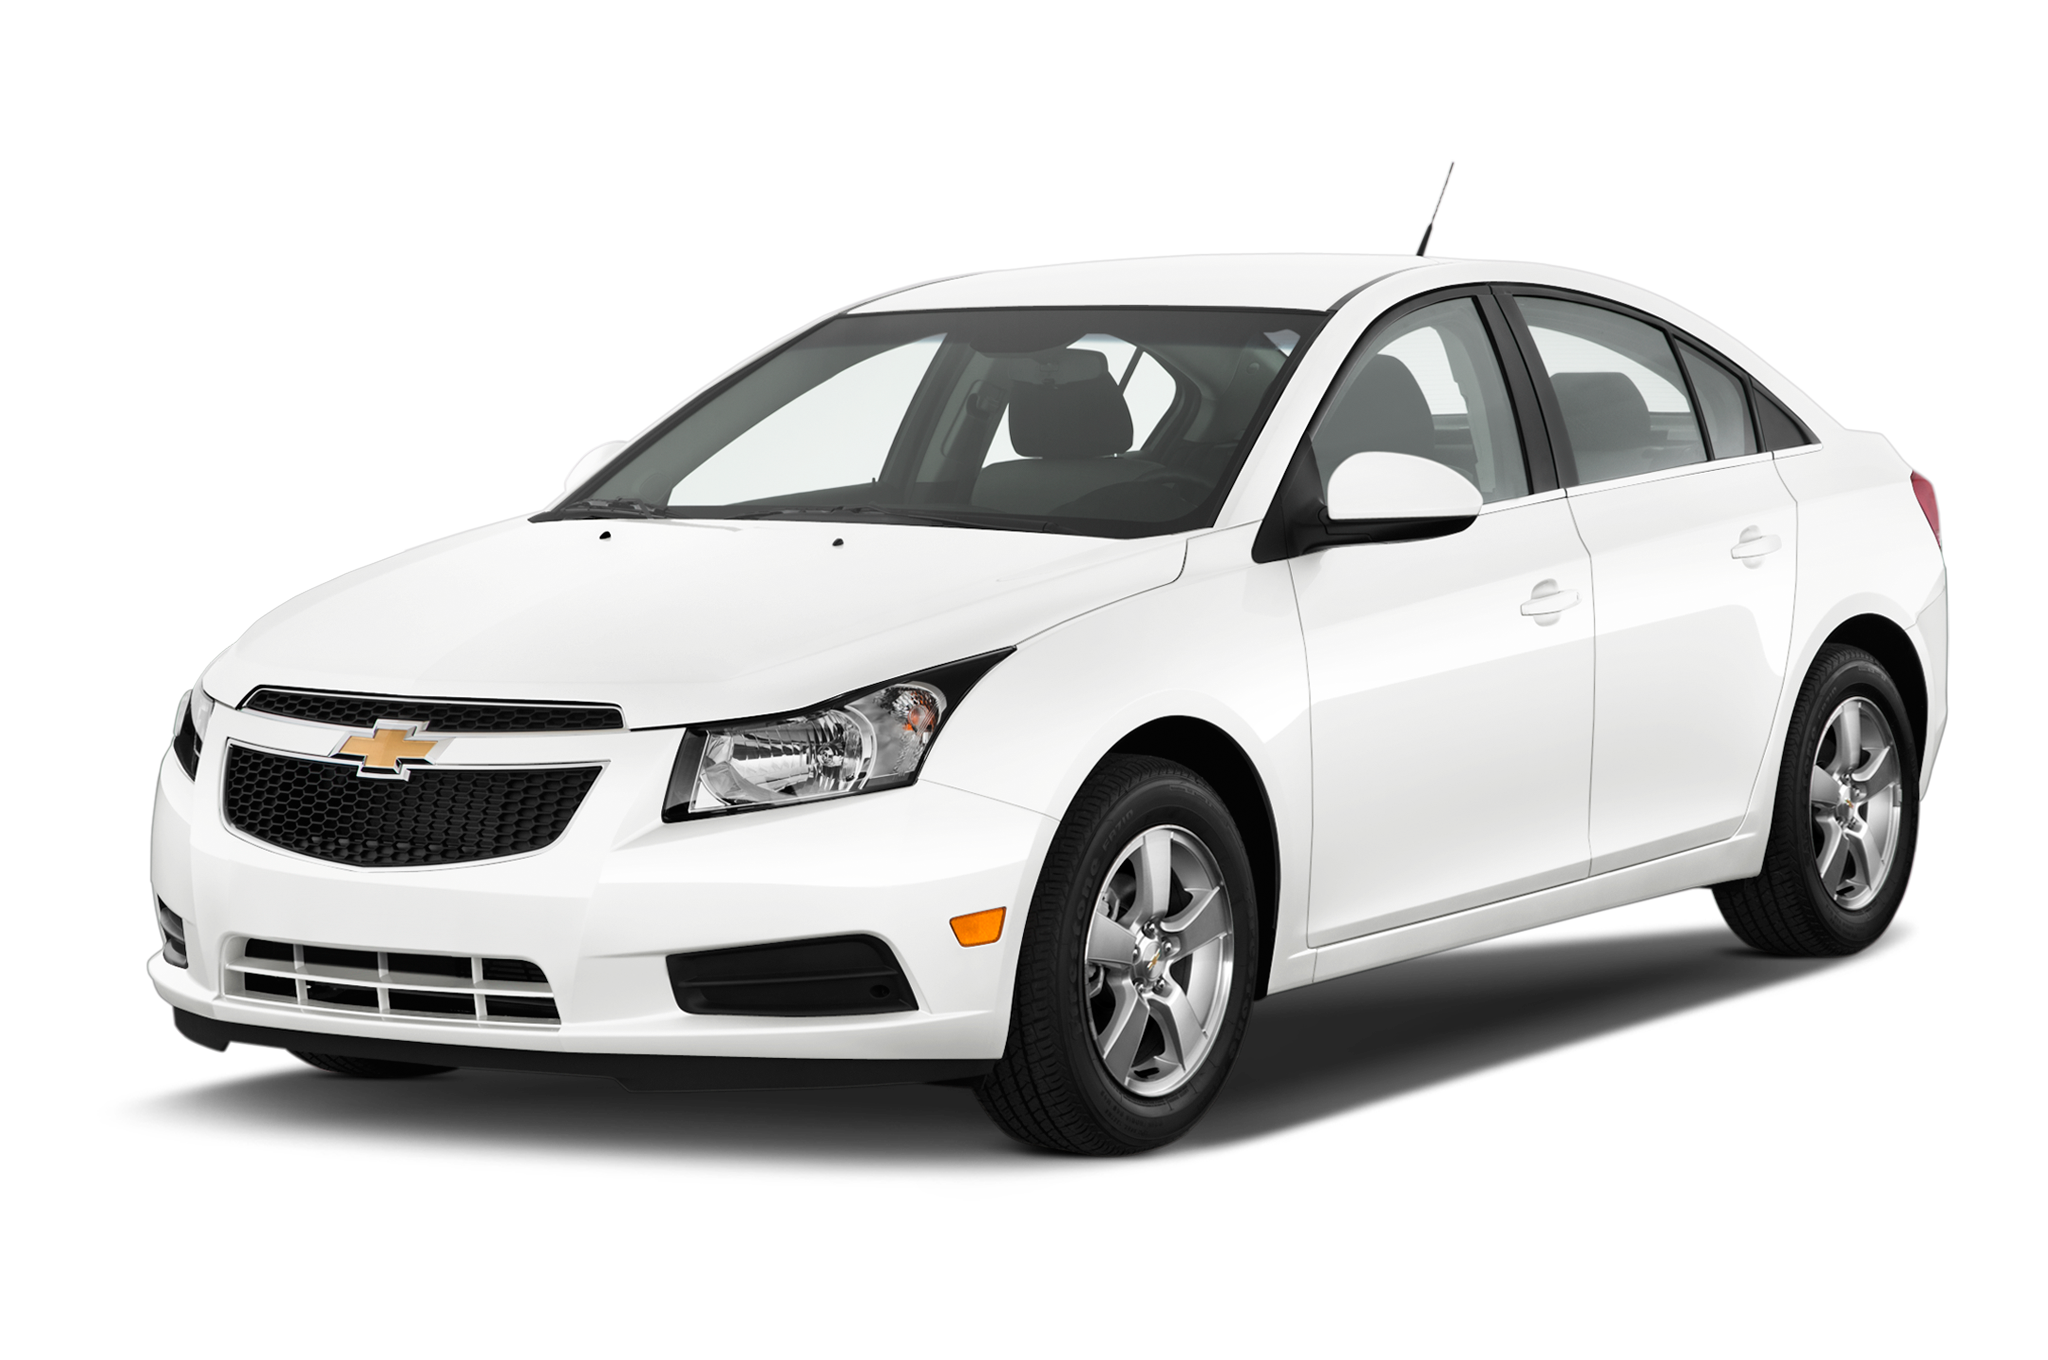 auctions carfinder tx papers on in chevrolet online copart storage sale houston en ls lien lot cruze auto maroon lt